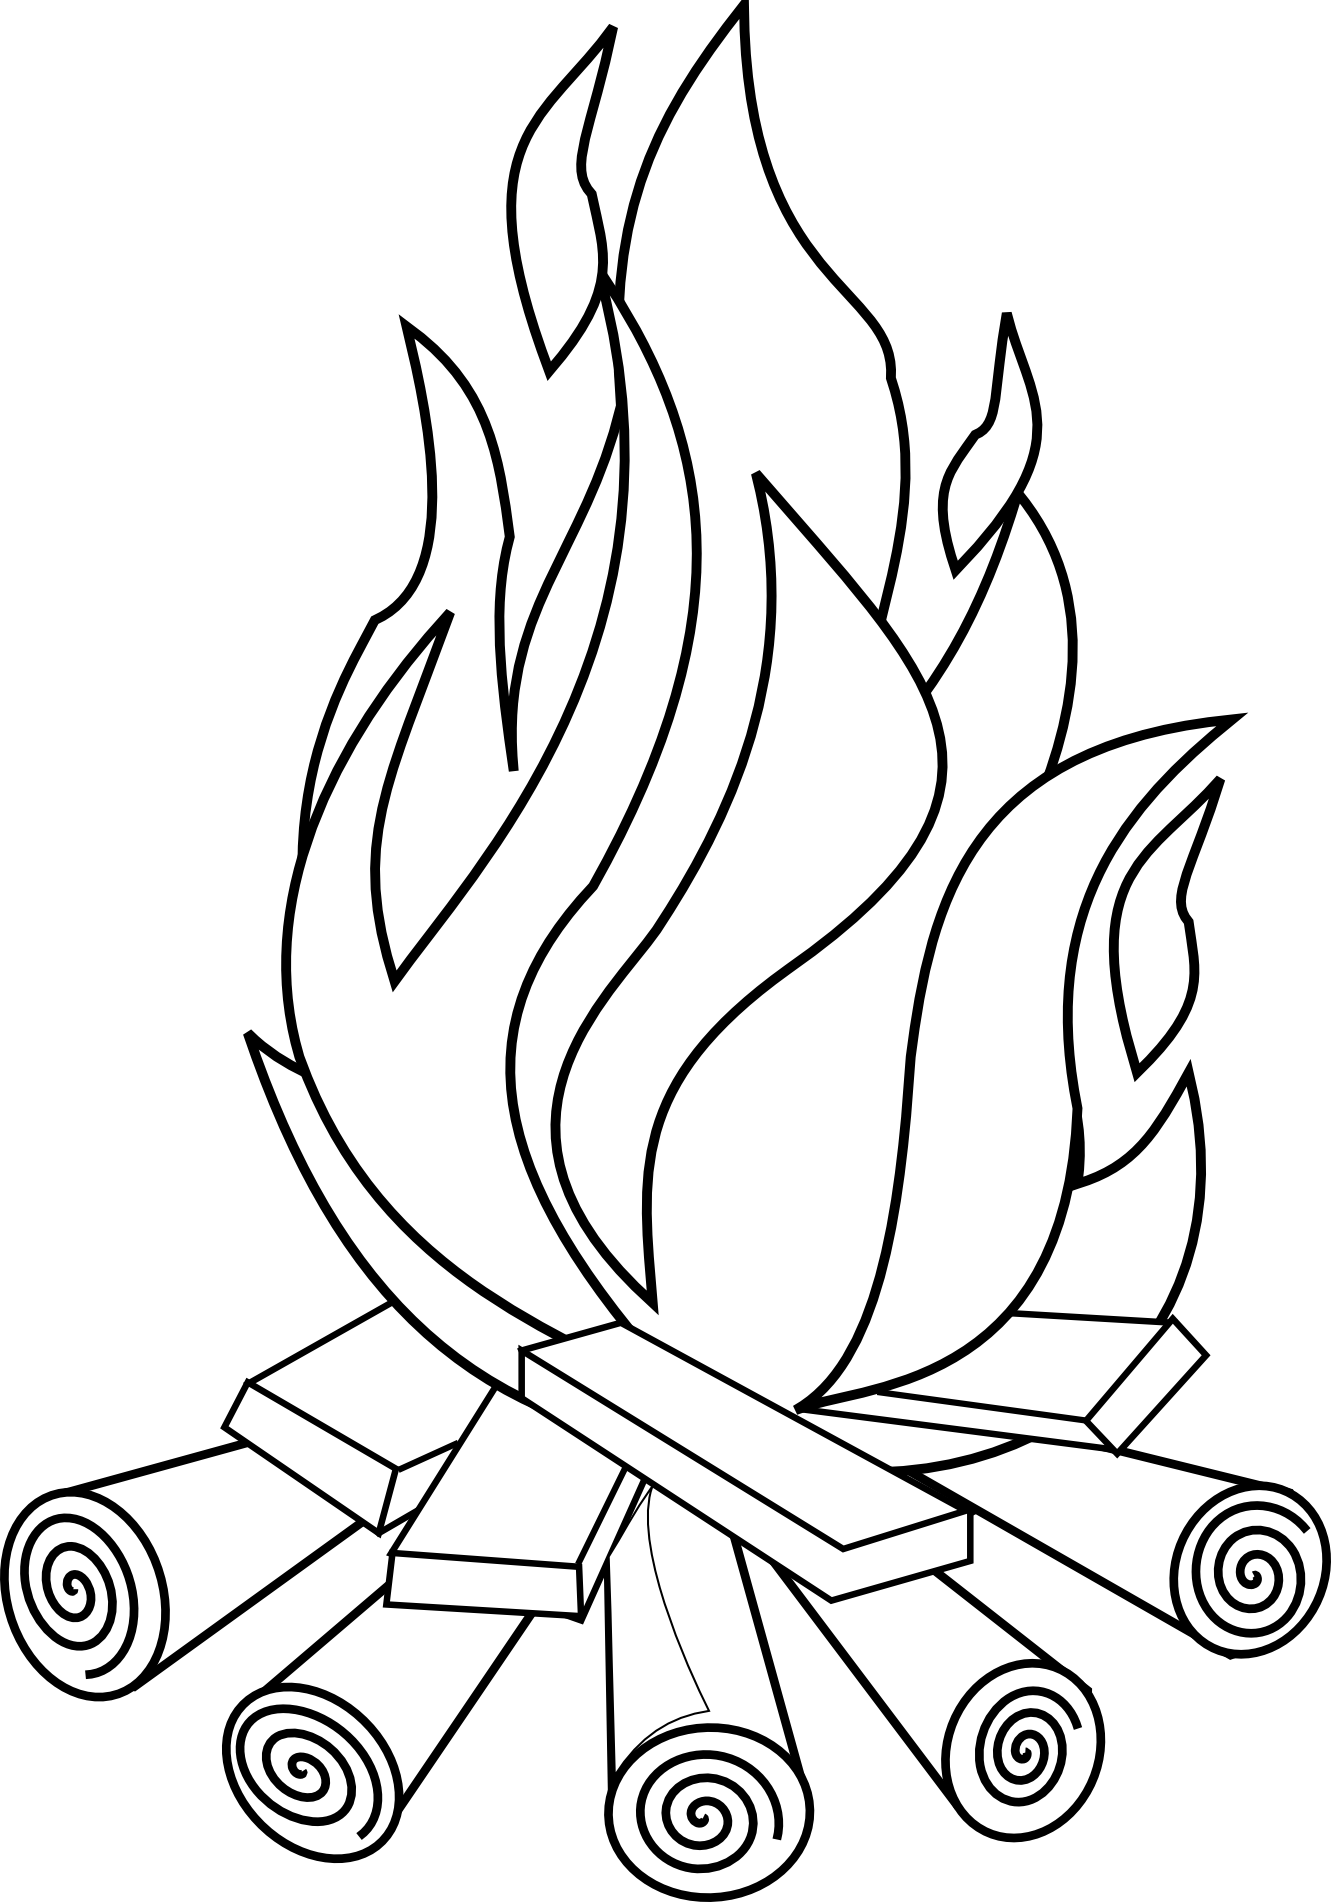 Clipart fire black and white. Images for tattoo pinterest